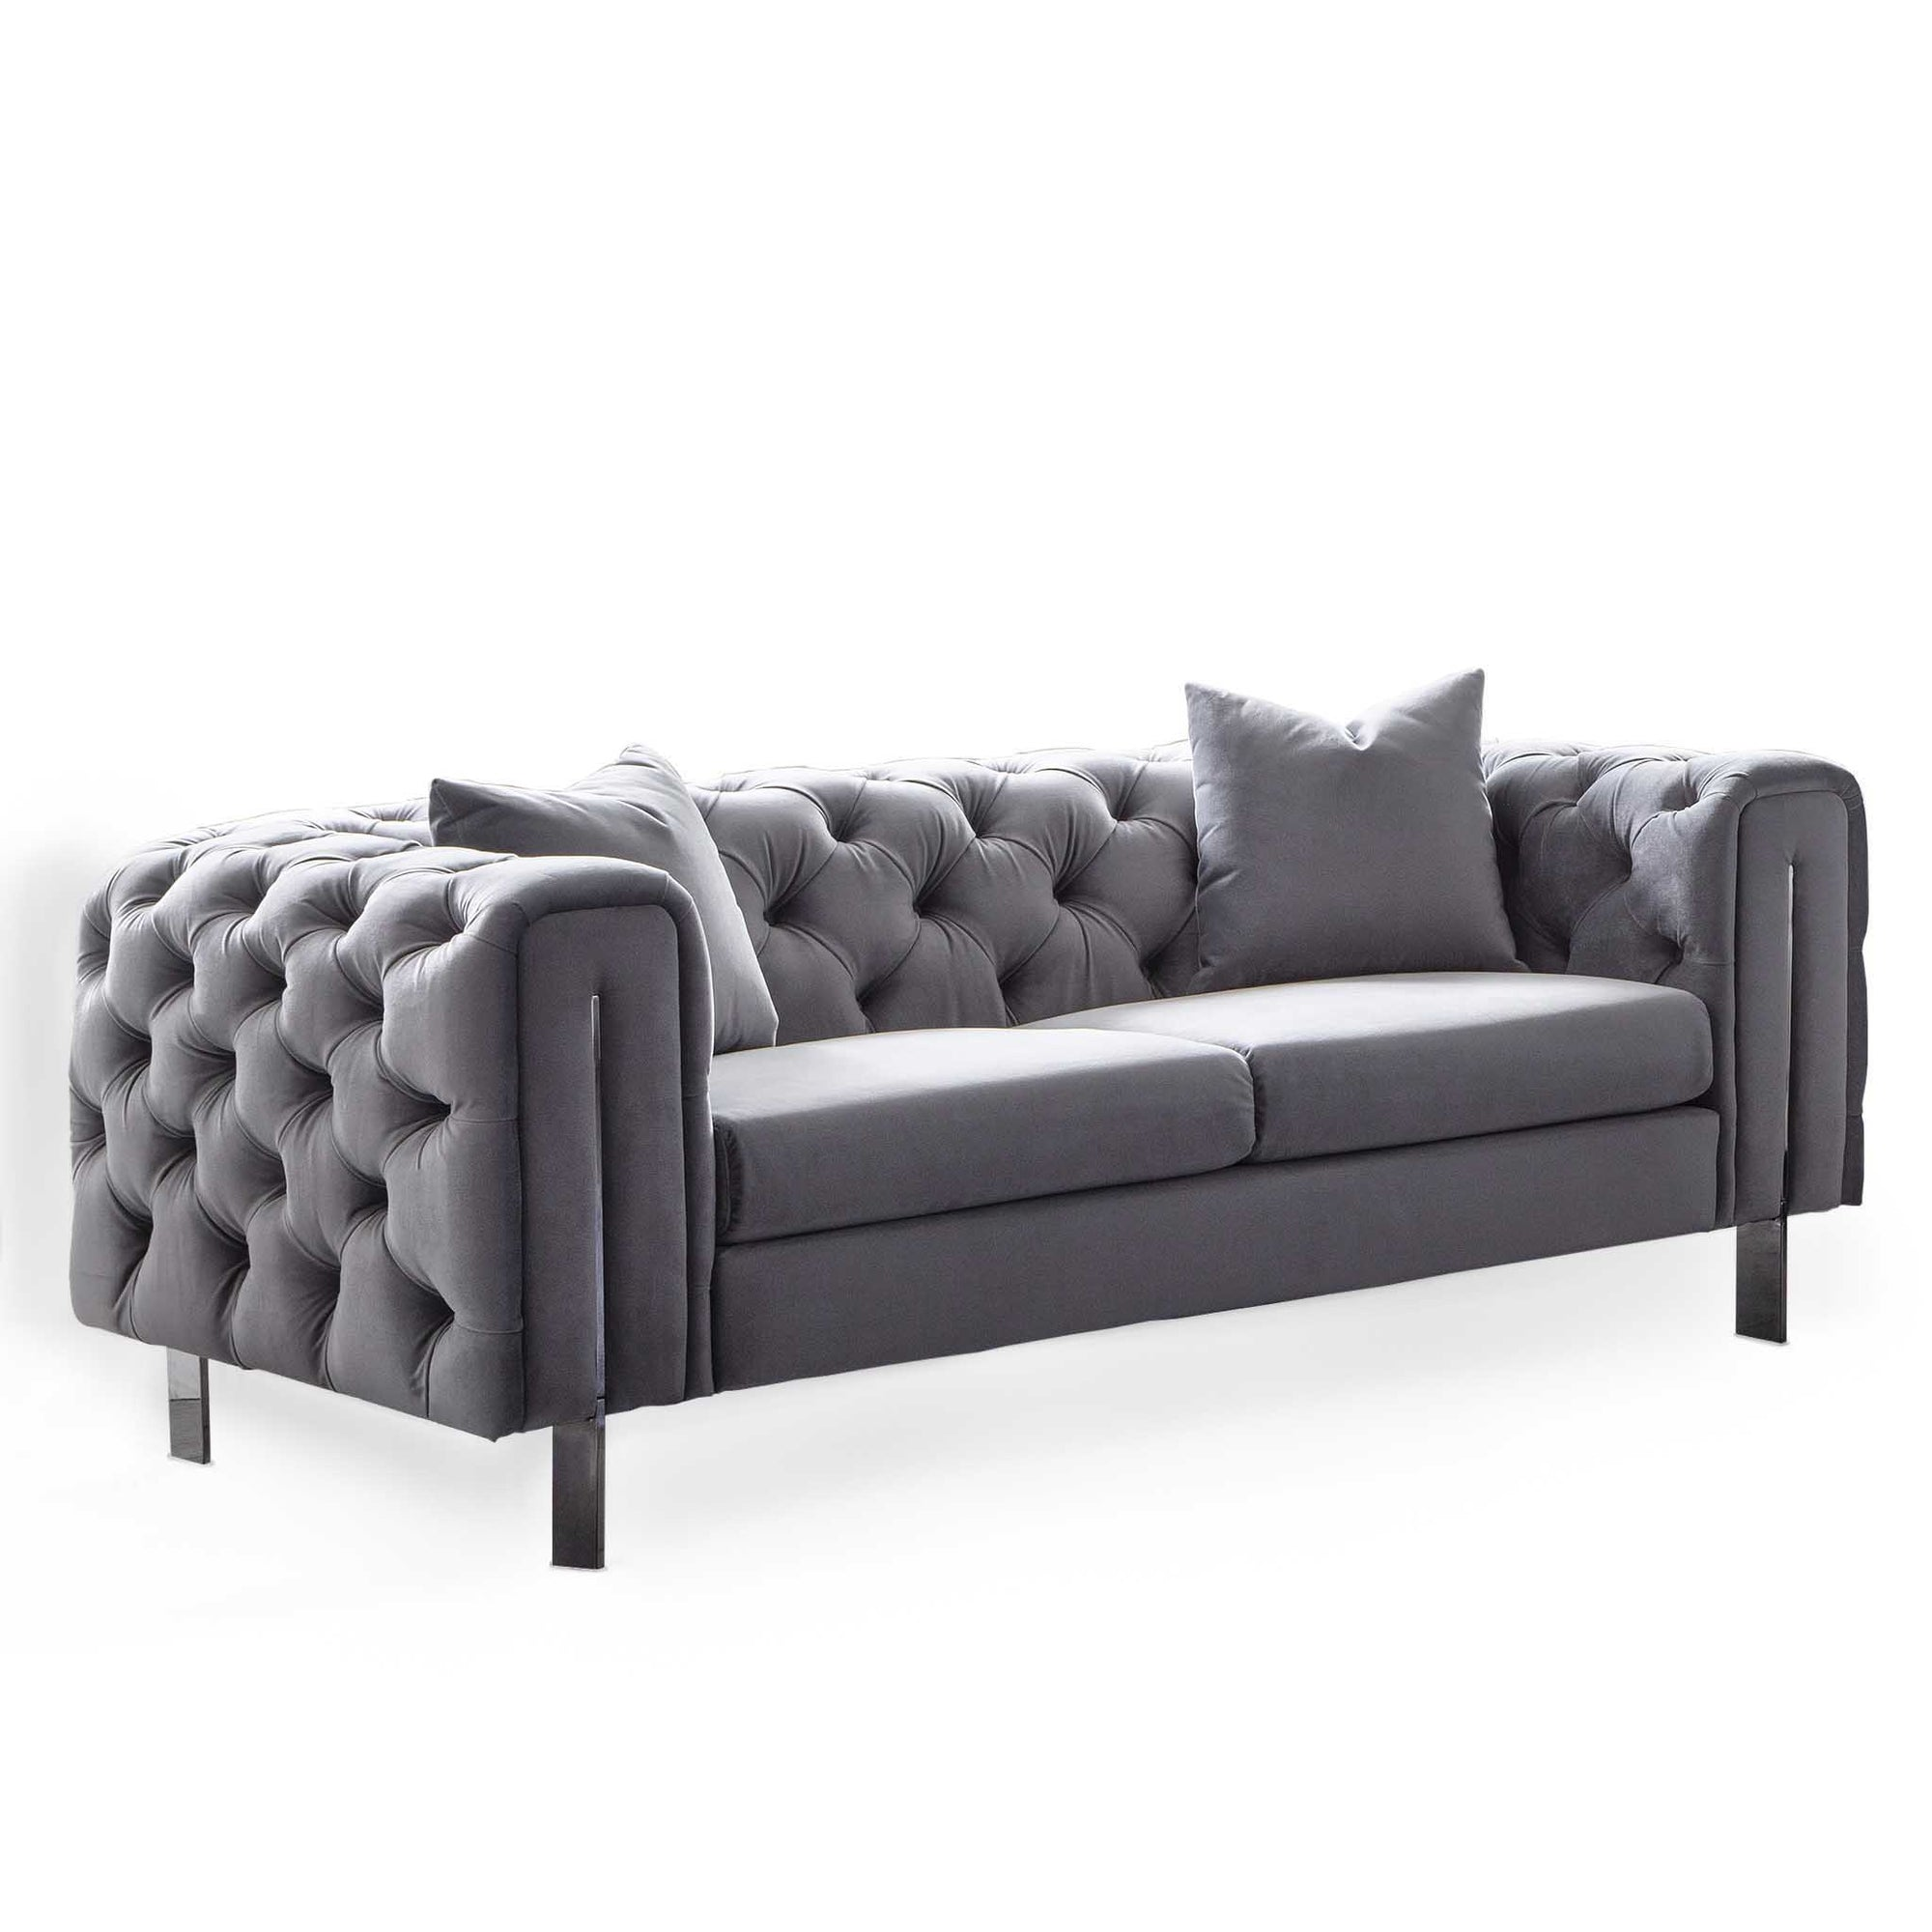 Ritz Grey Velvet 2 Seater Chesterfield Sofa from Roseland Furniture